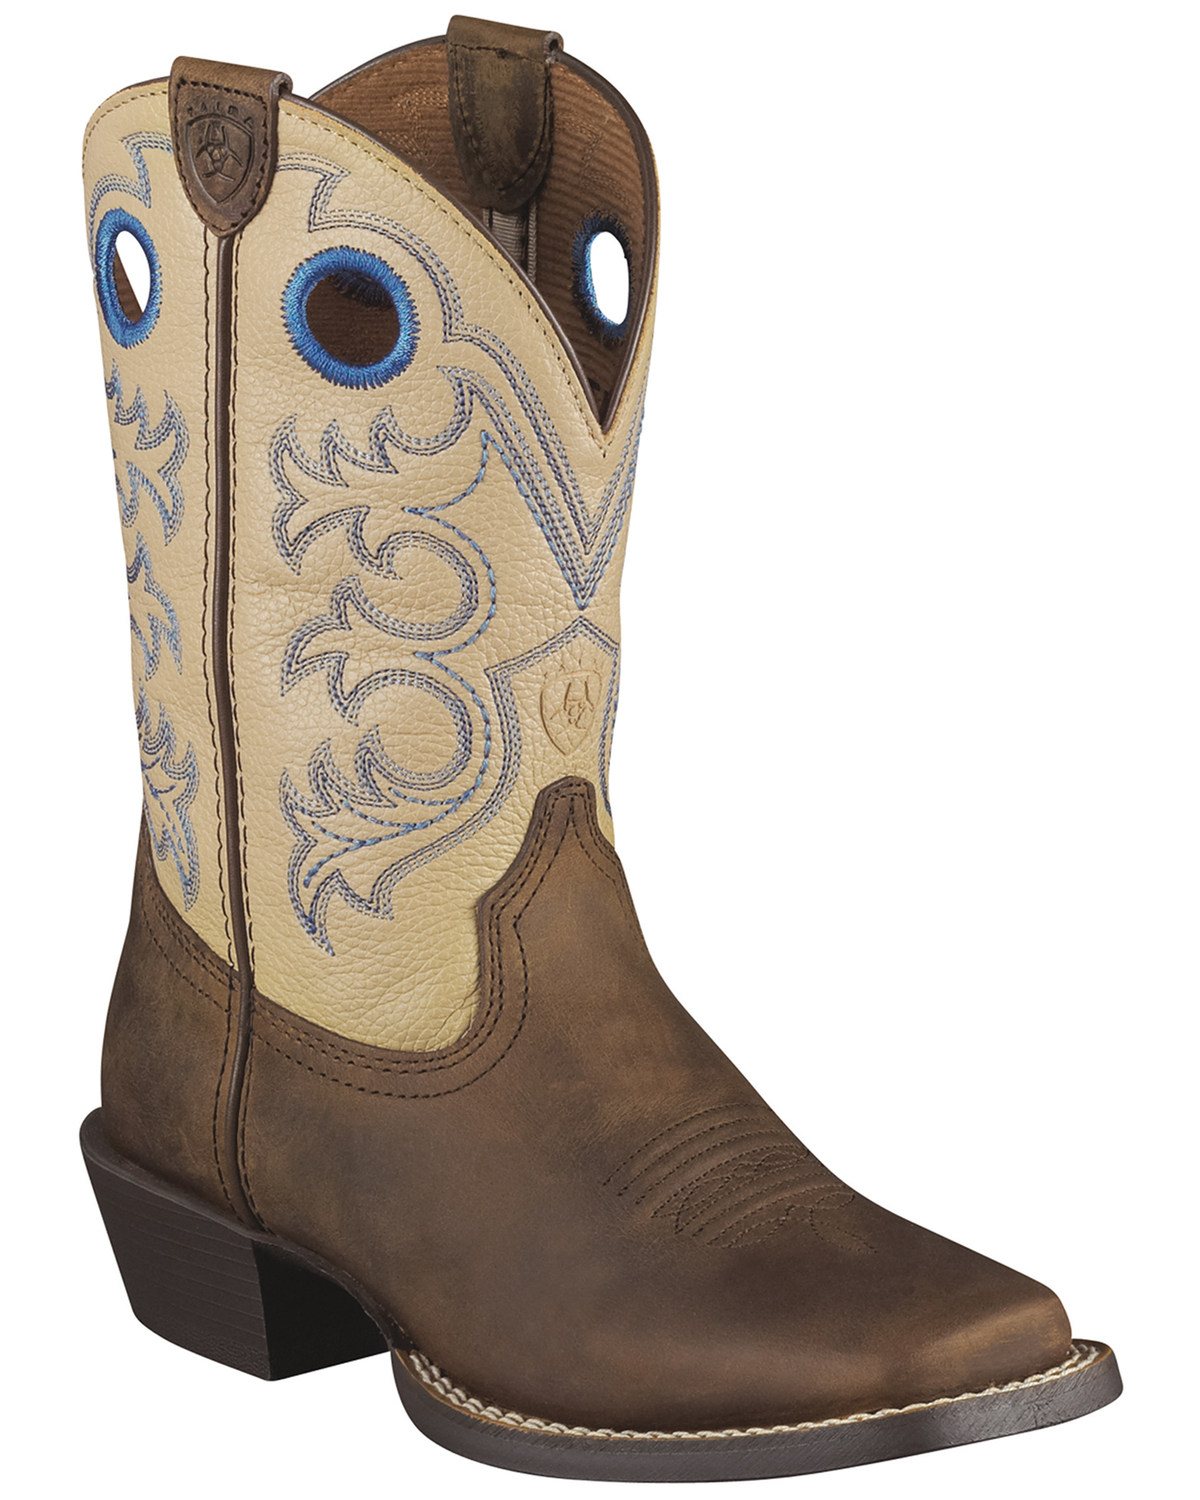 6faee784cd2 Ariat Youth Crossfire Western Boots